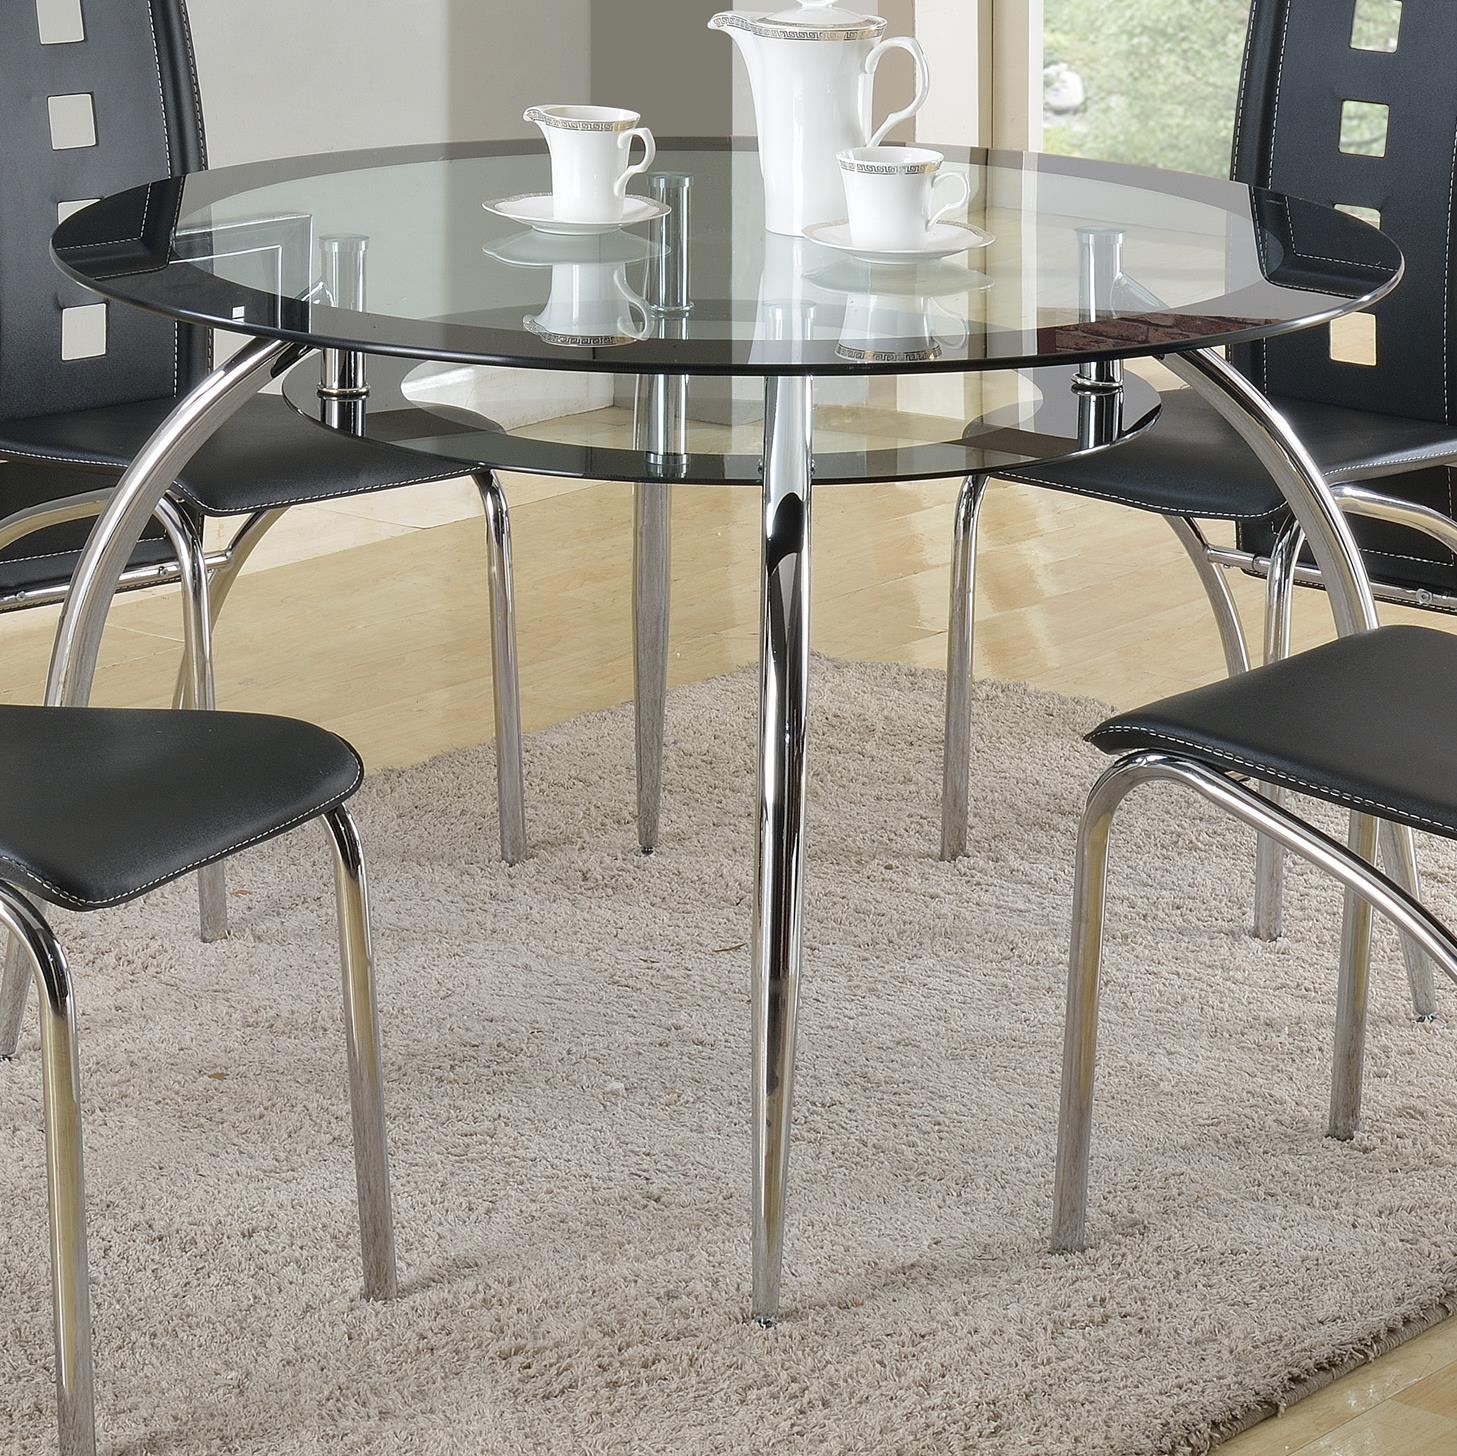 Modern Round Glass Dining Table Mila Round Glass Dining Table With Suspended Platform Under Table Top By Crown Mark At Household Furniture